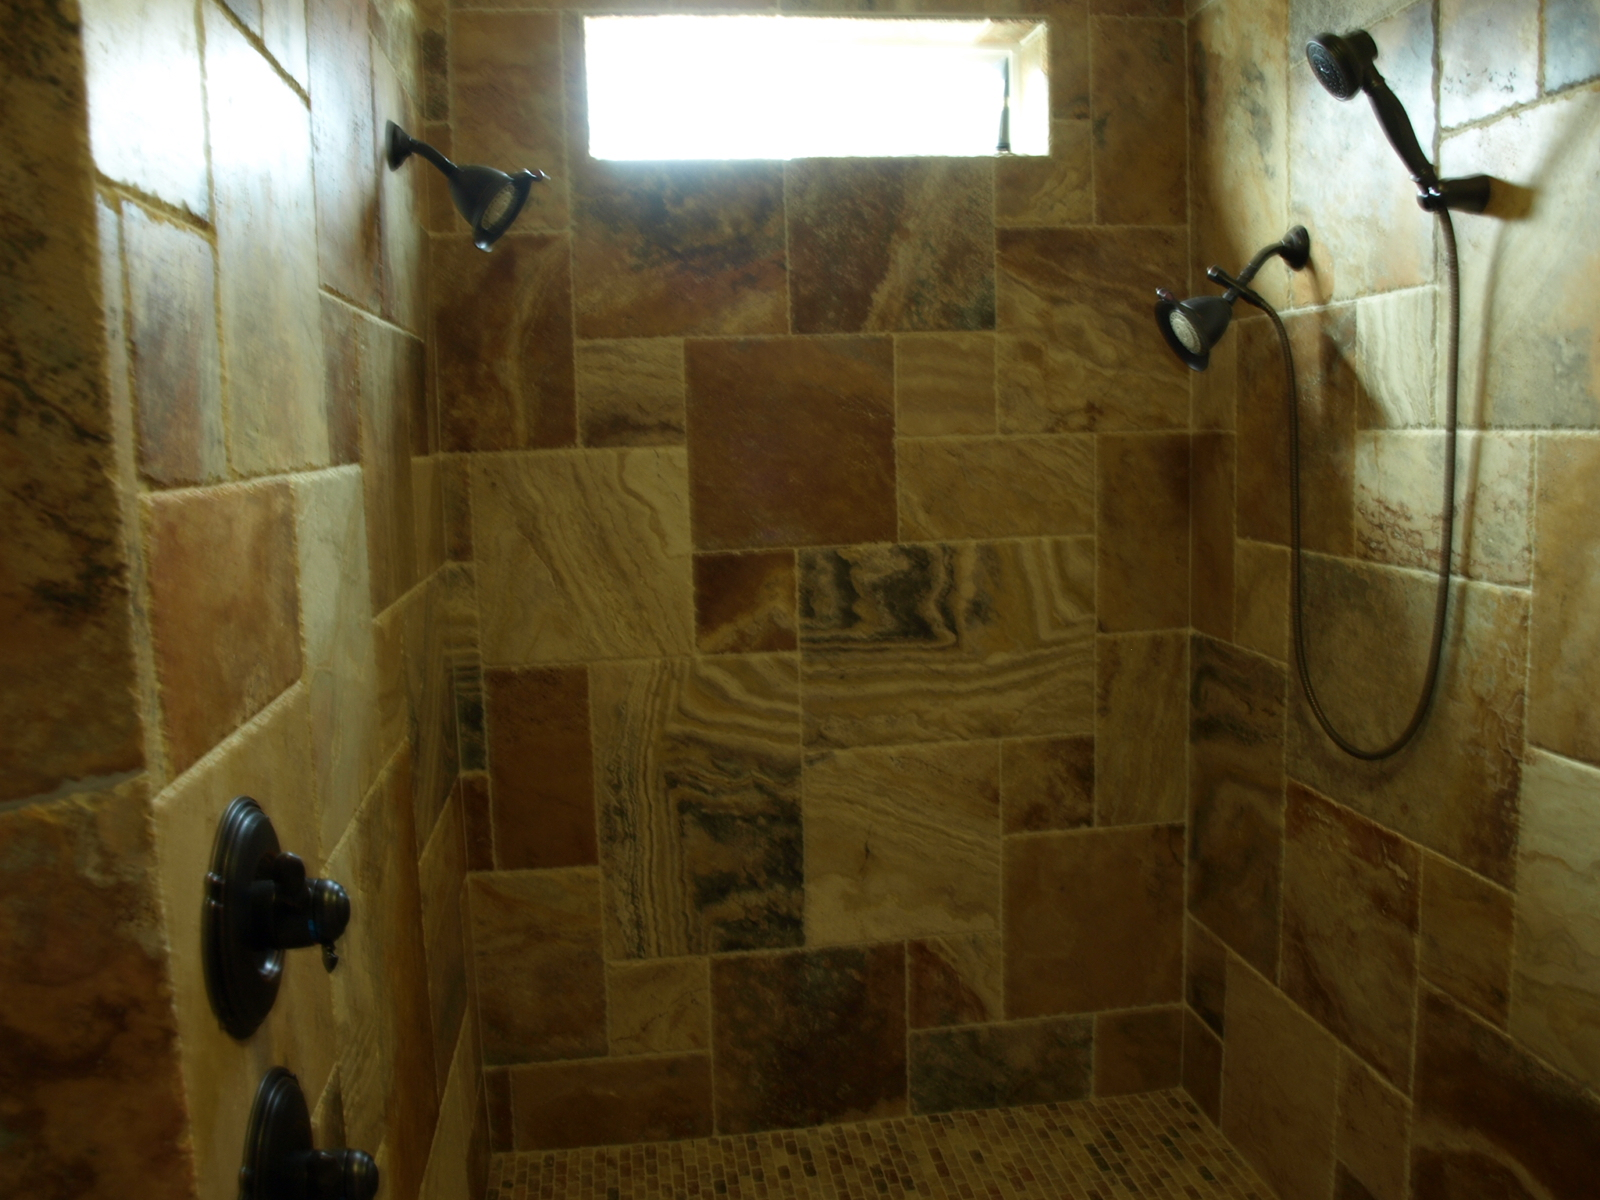 Pictures Of Bathroom Remodels cost of bathroom remodel - large and beautiful photos. photo to